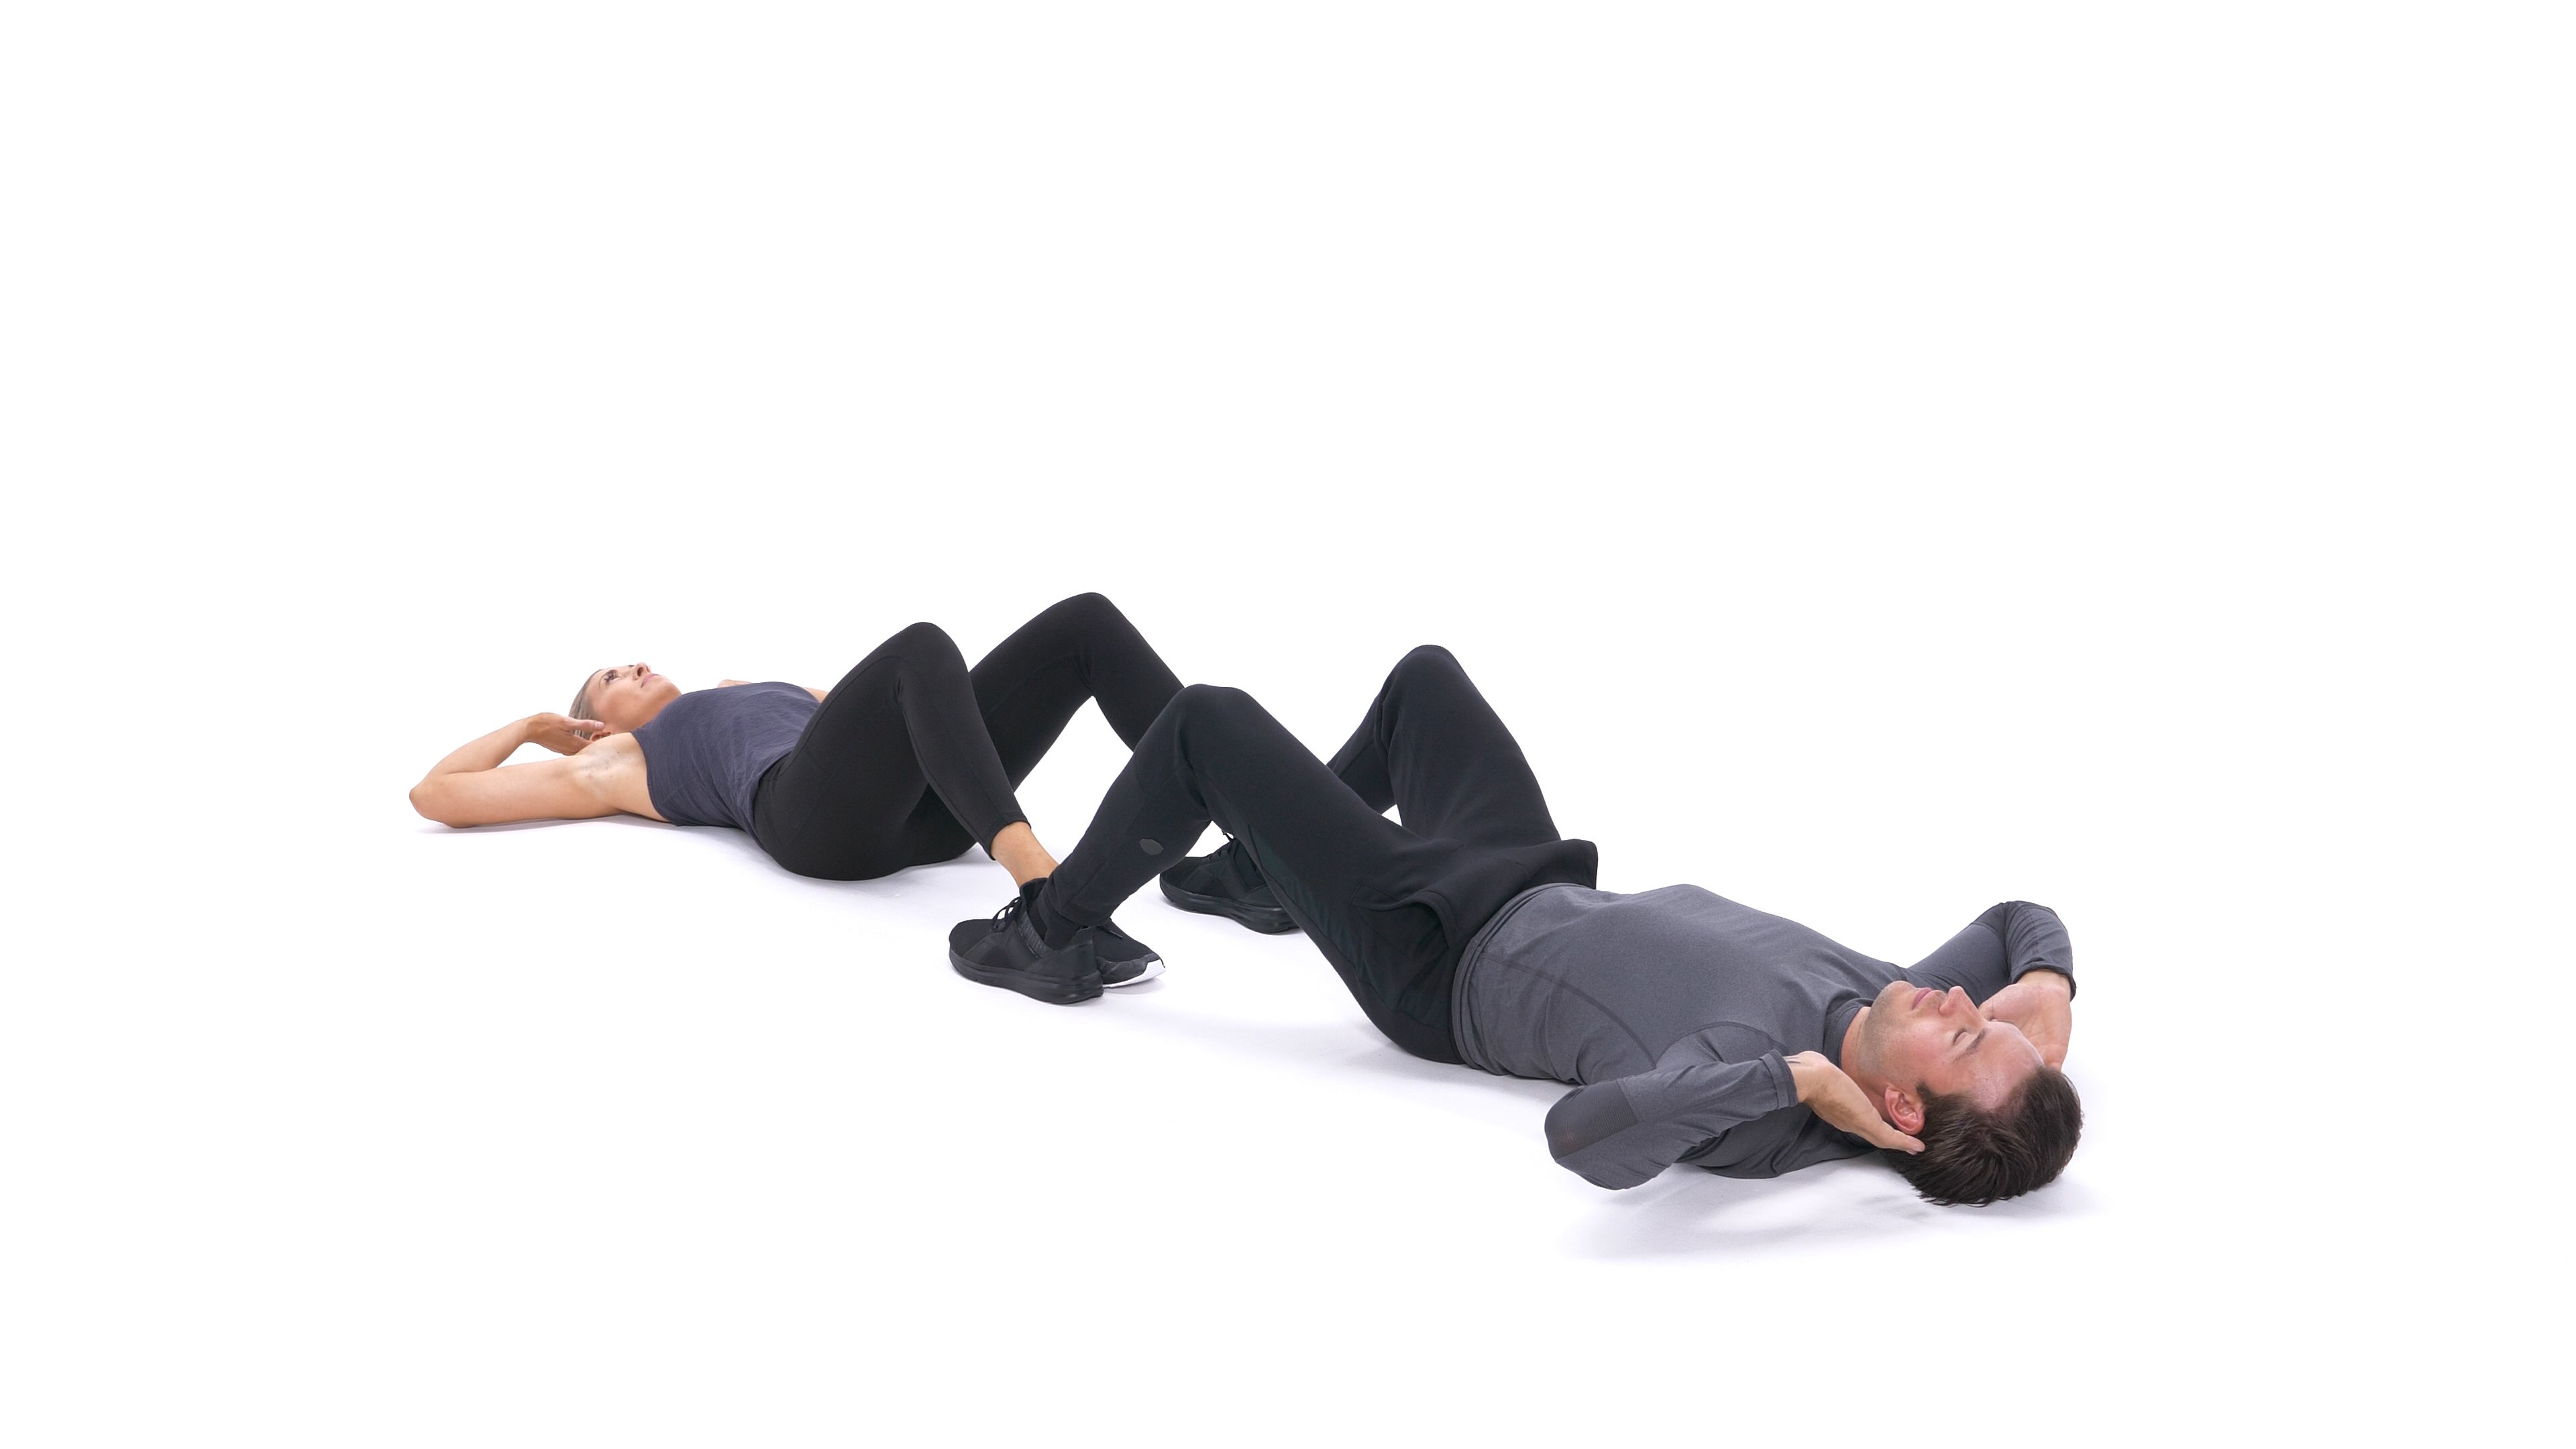 Partner sit-up with high-five image